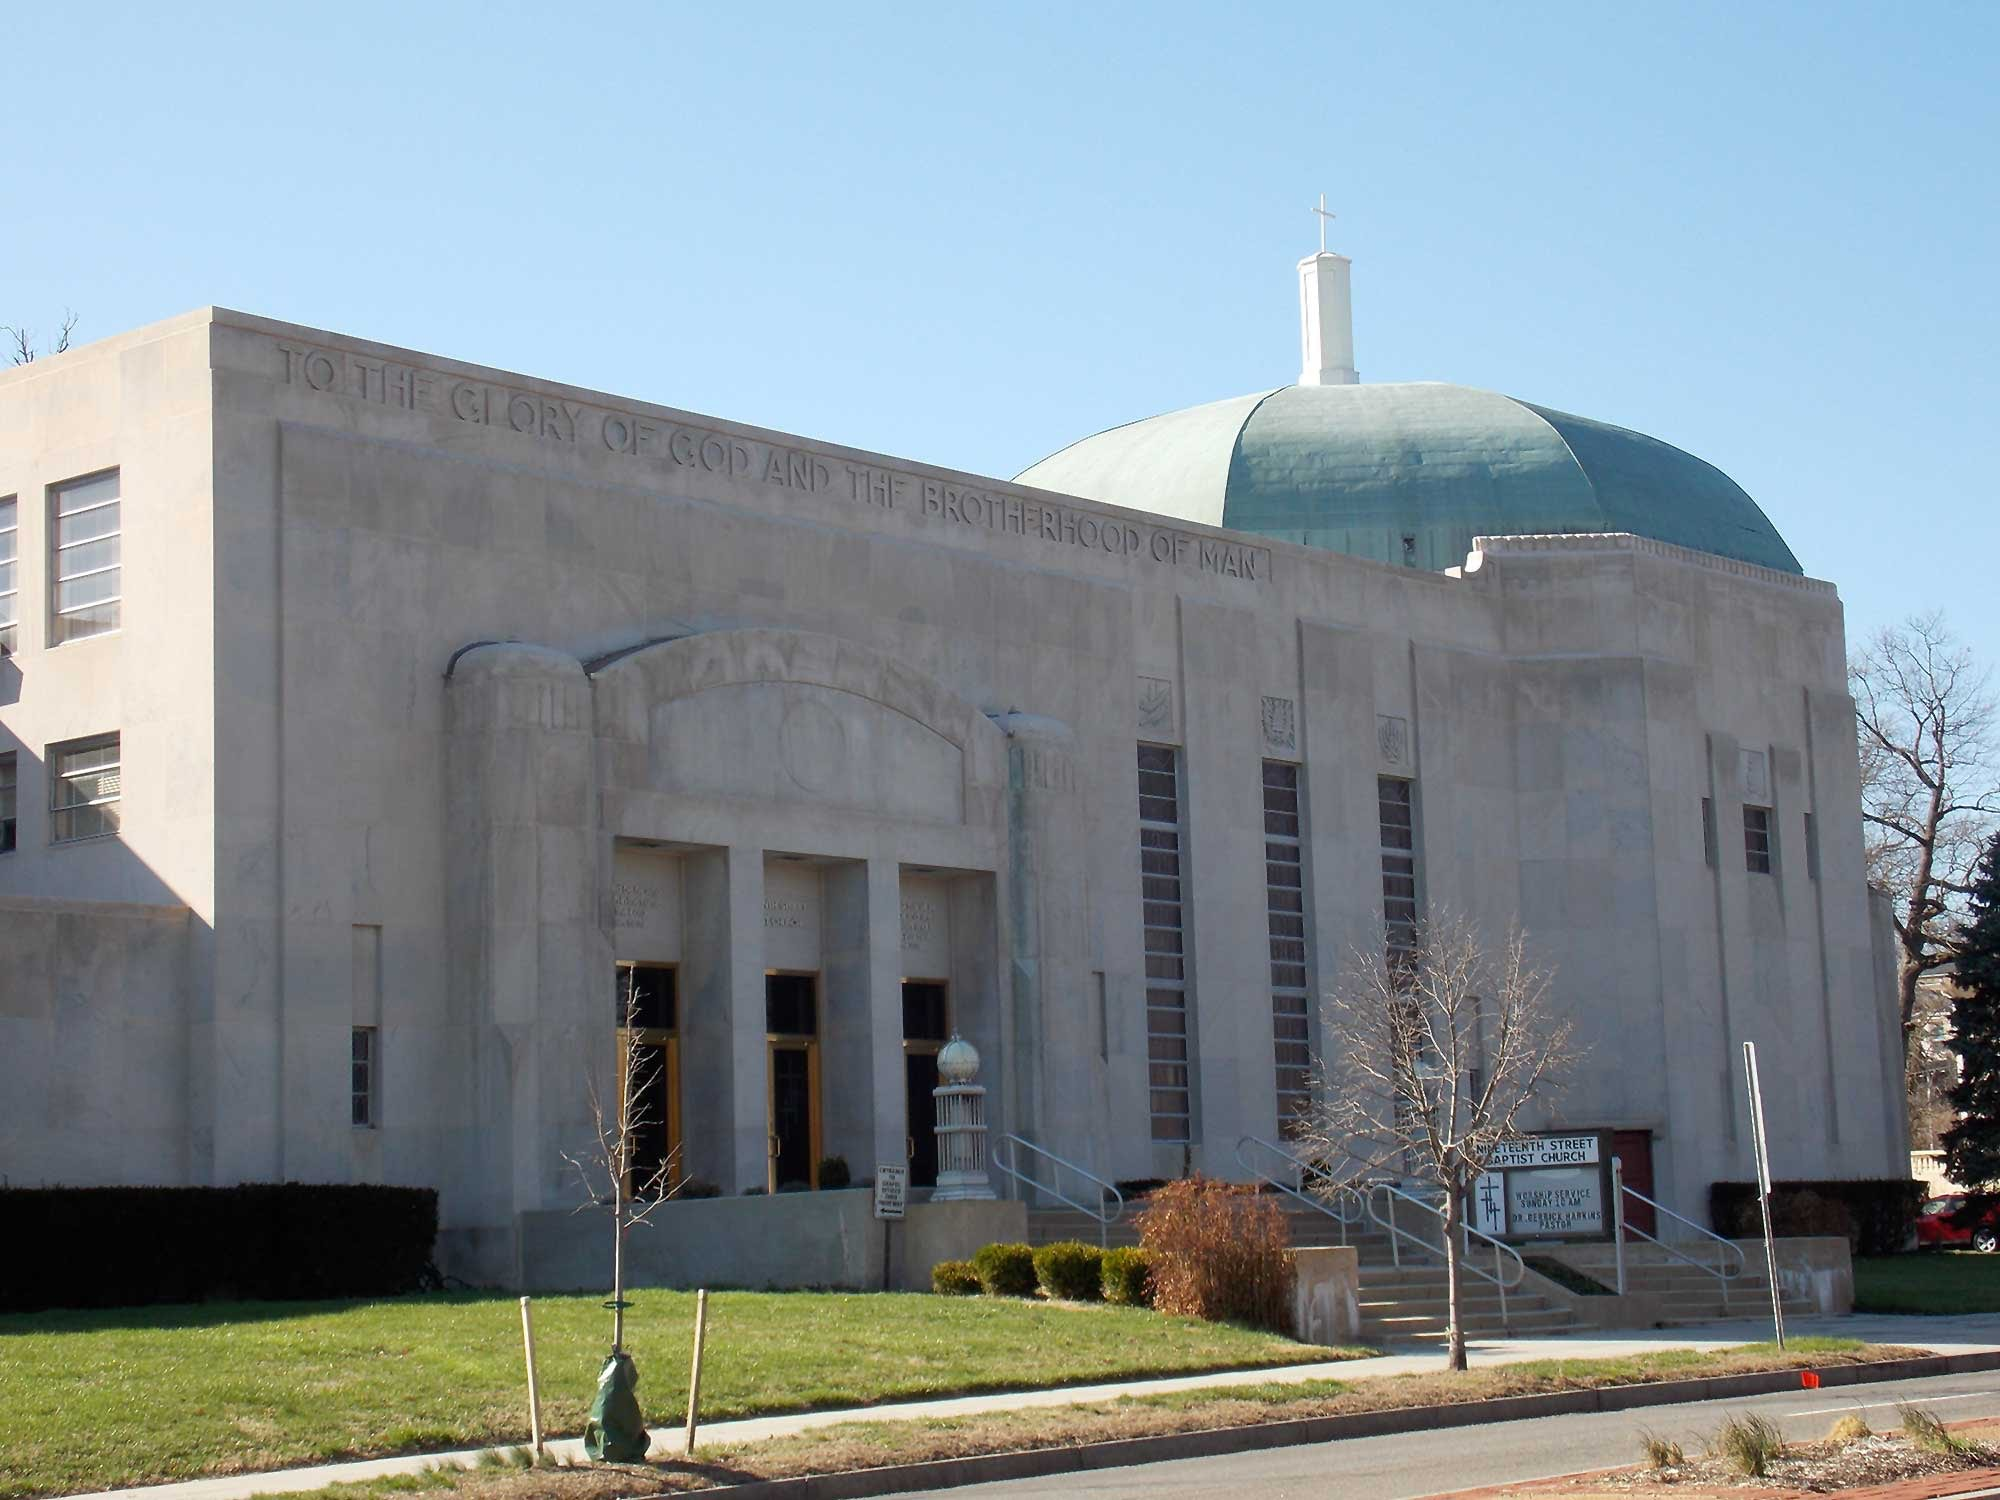 """The Nineteenth Street Baptist Church, a rectangular building made of grey limestone with a multi-sided rounded green dome on the right. An inscription reads """"To the glory of God and the brotherhood of man."""